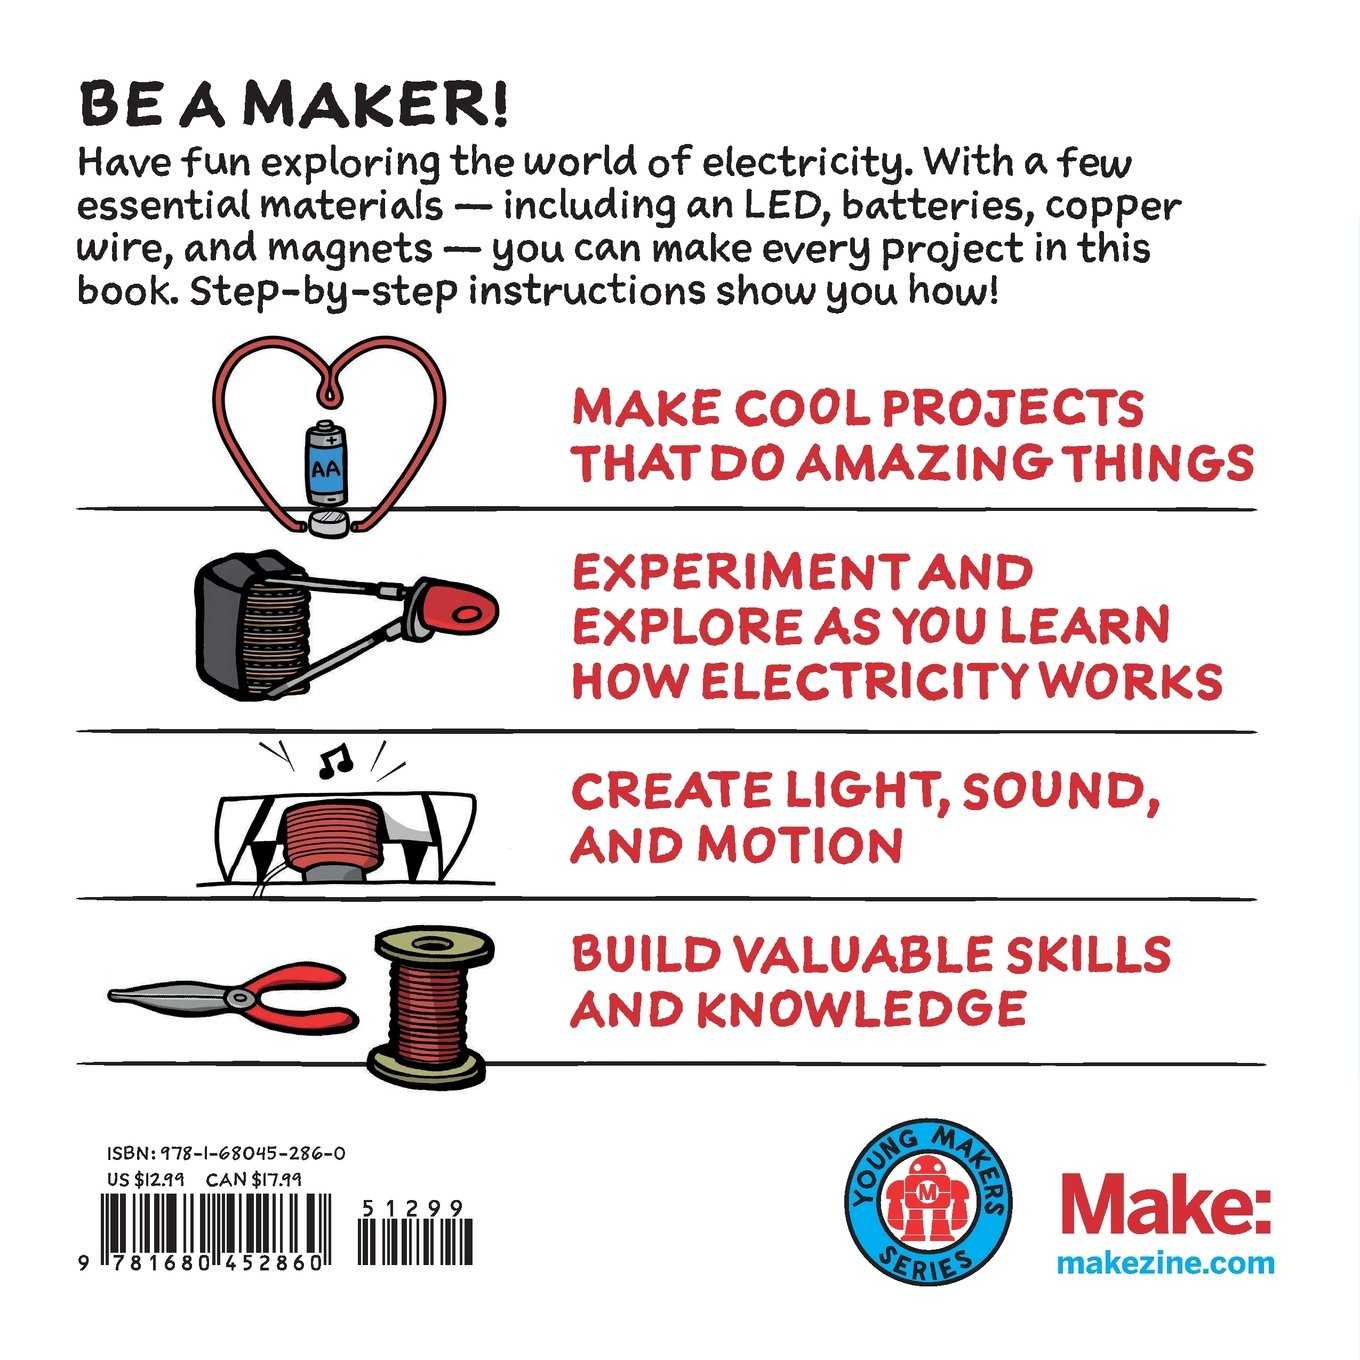 Electricity for young makers fun and easy do it yourself projects electricity for young makers fun and easy do it yourself projects marc de vinck 9781680452860 amazon books solutioingenieria Images